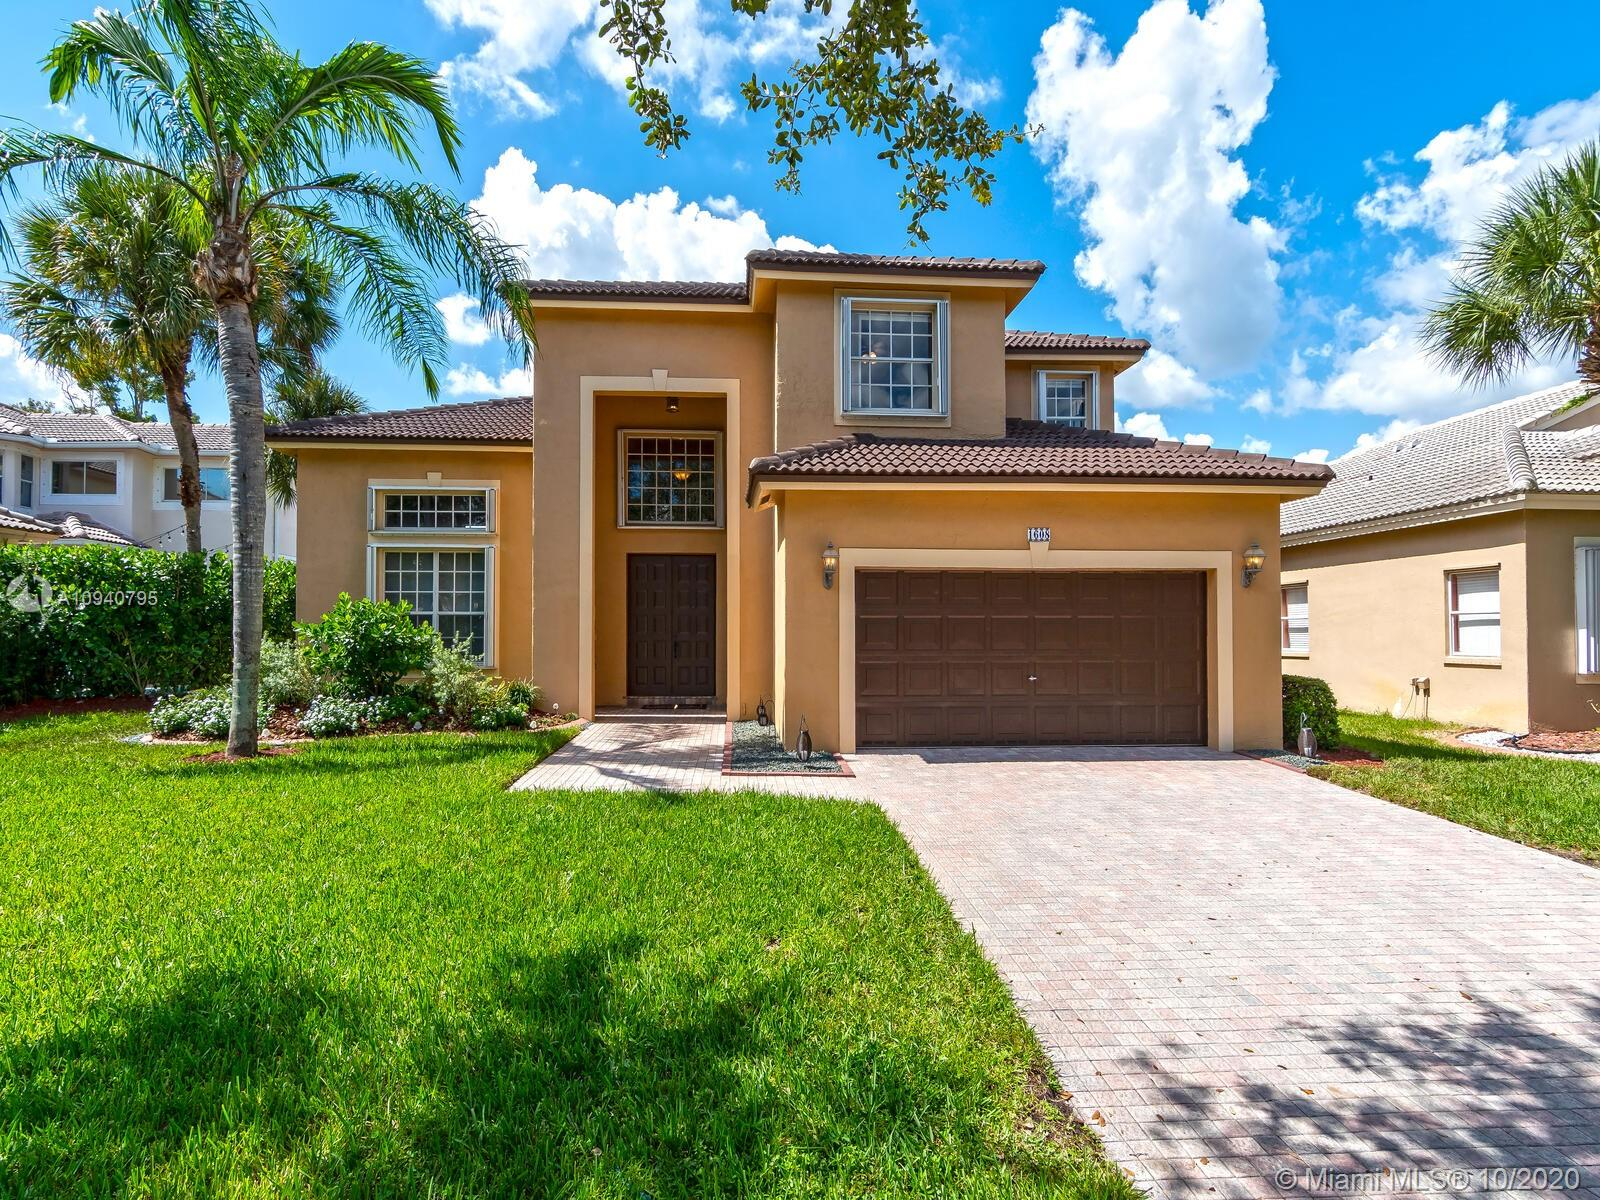 1608 NW 171st Ave, Pembroke Pines, Florida 33028, 4 Bedrooms Bedrooms, ,3 BathroomsBathrooms,Residential,For Sale,1608 NW 171st Ave,A10940795